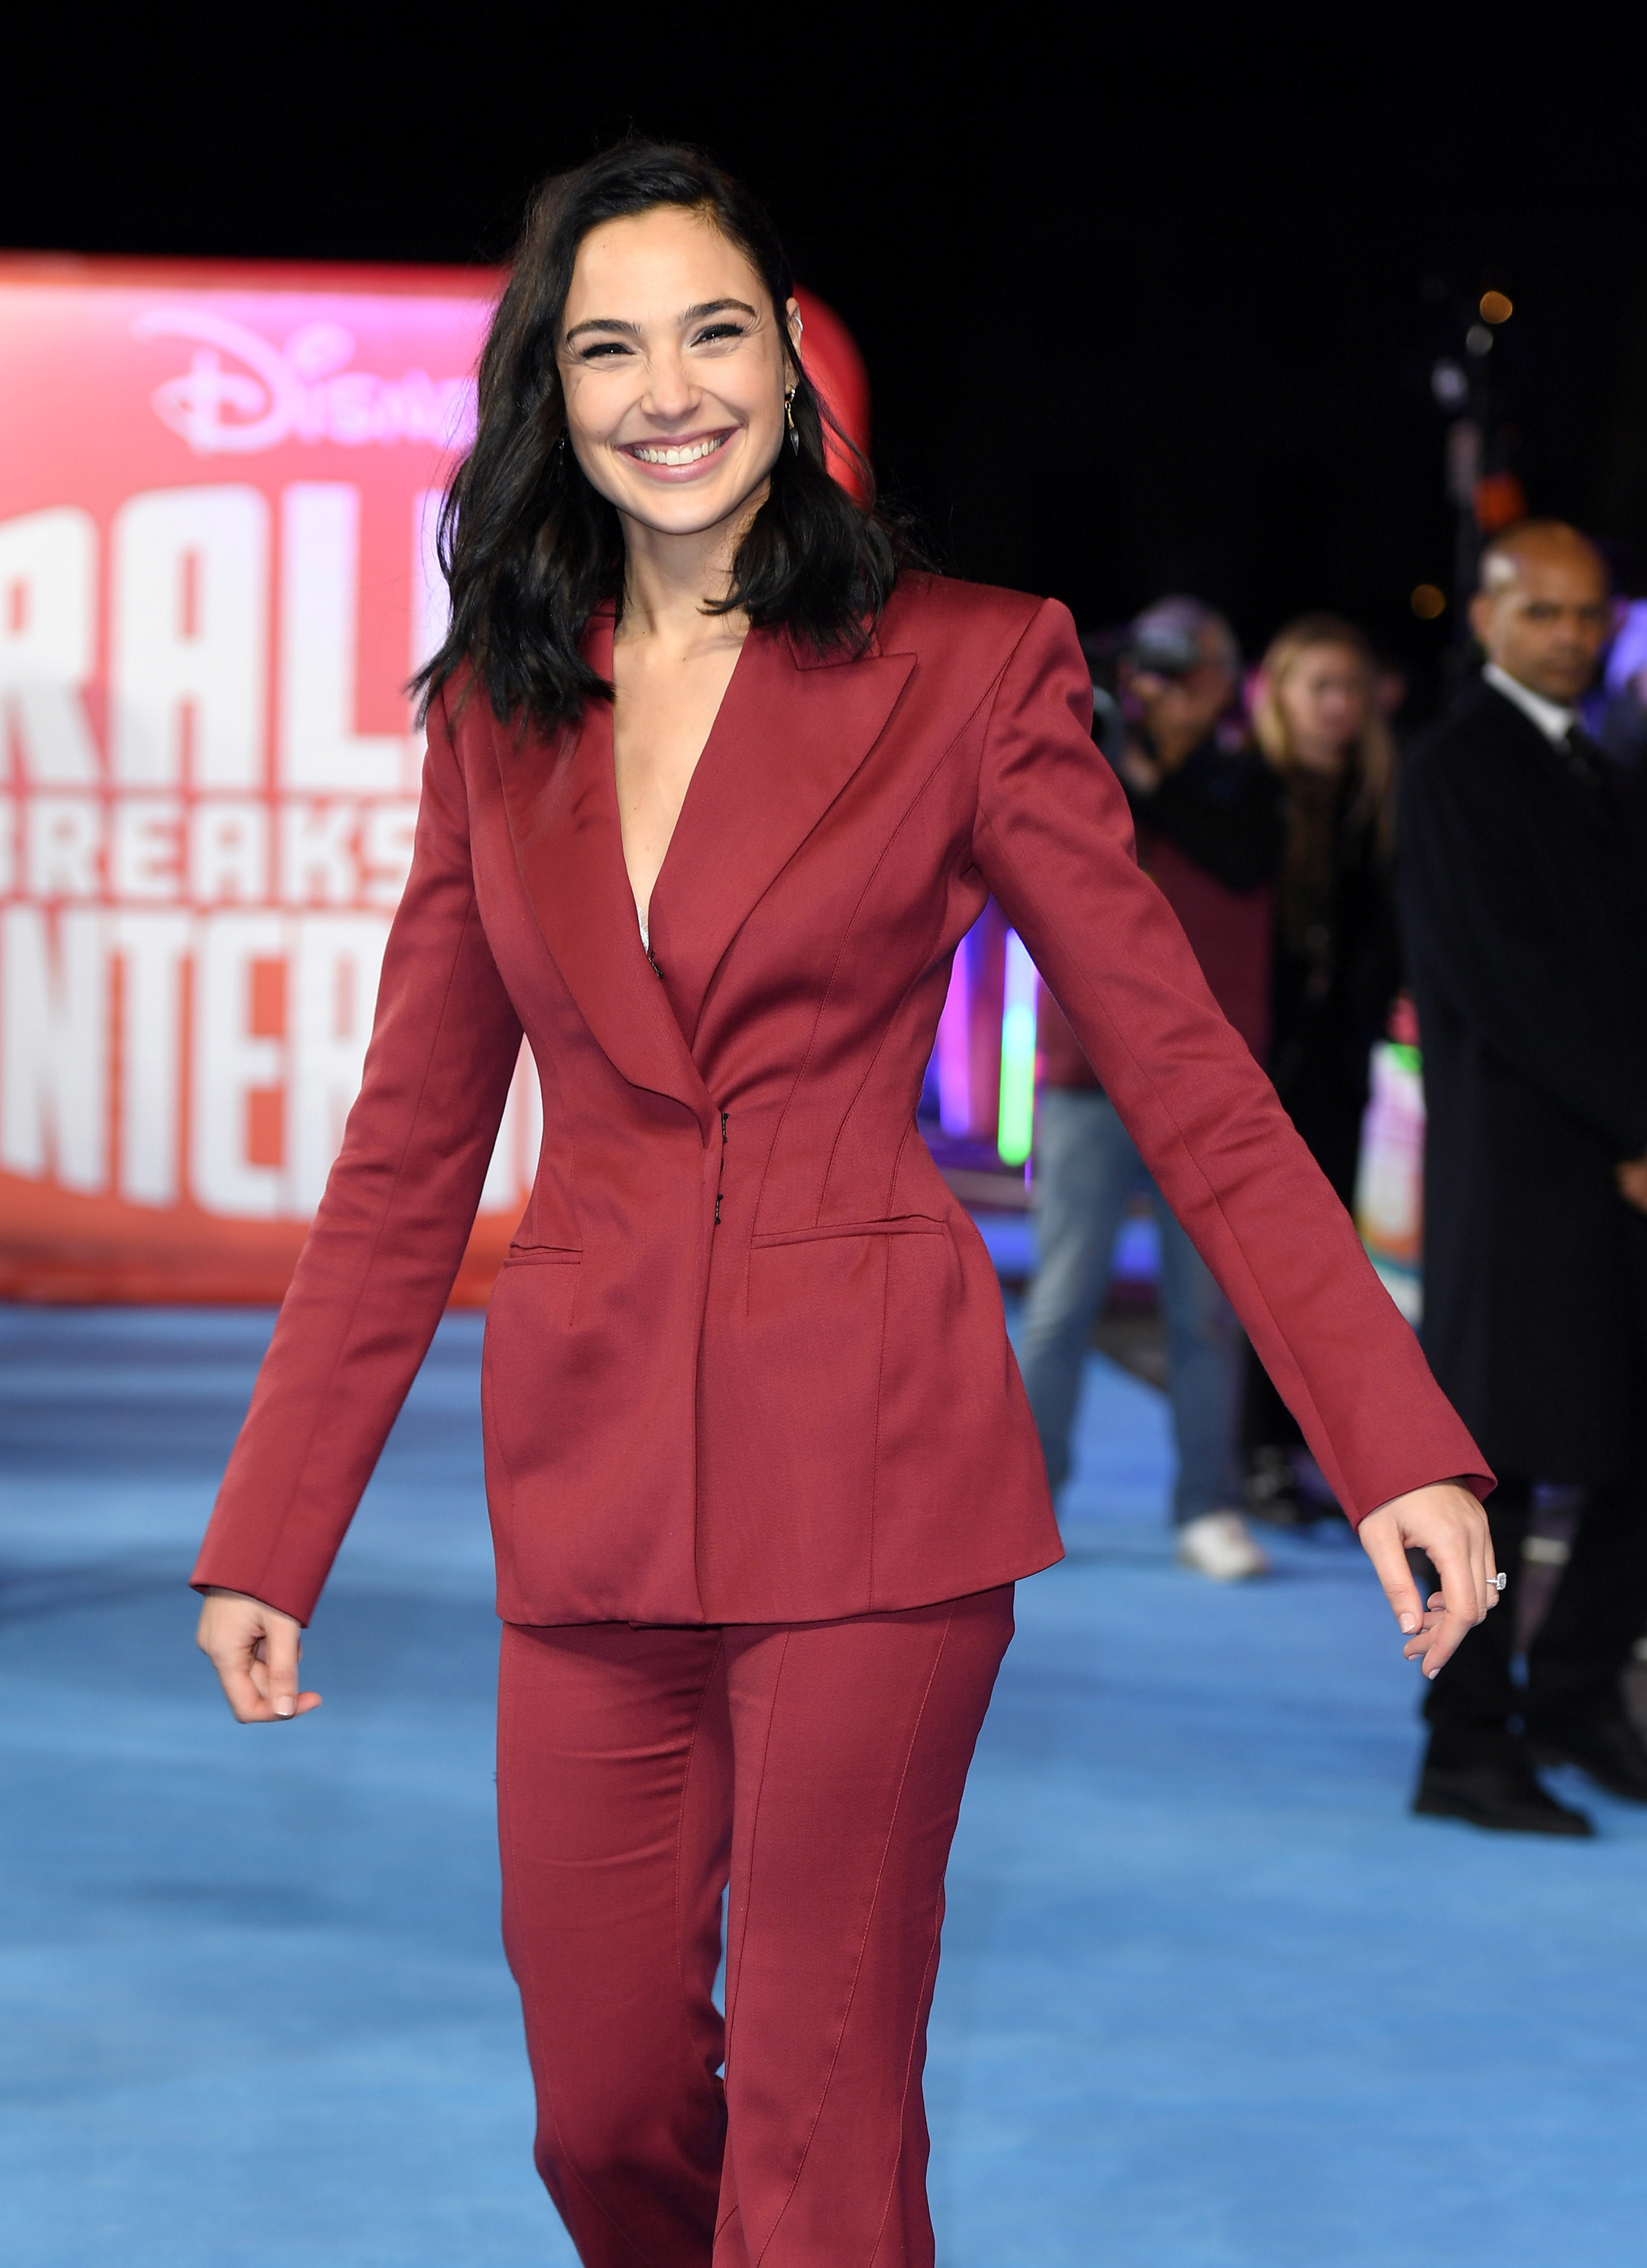 Gal Gadot wearing a red suit at the premiere of Ralph Breaks the Internet